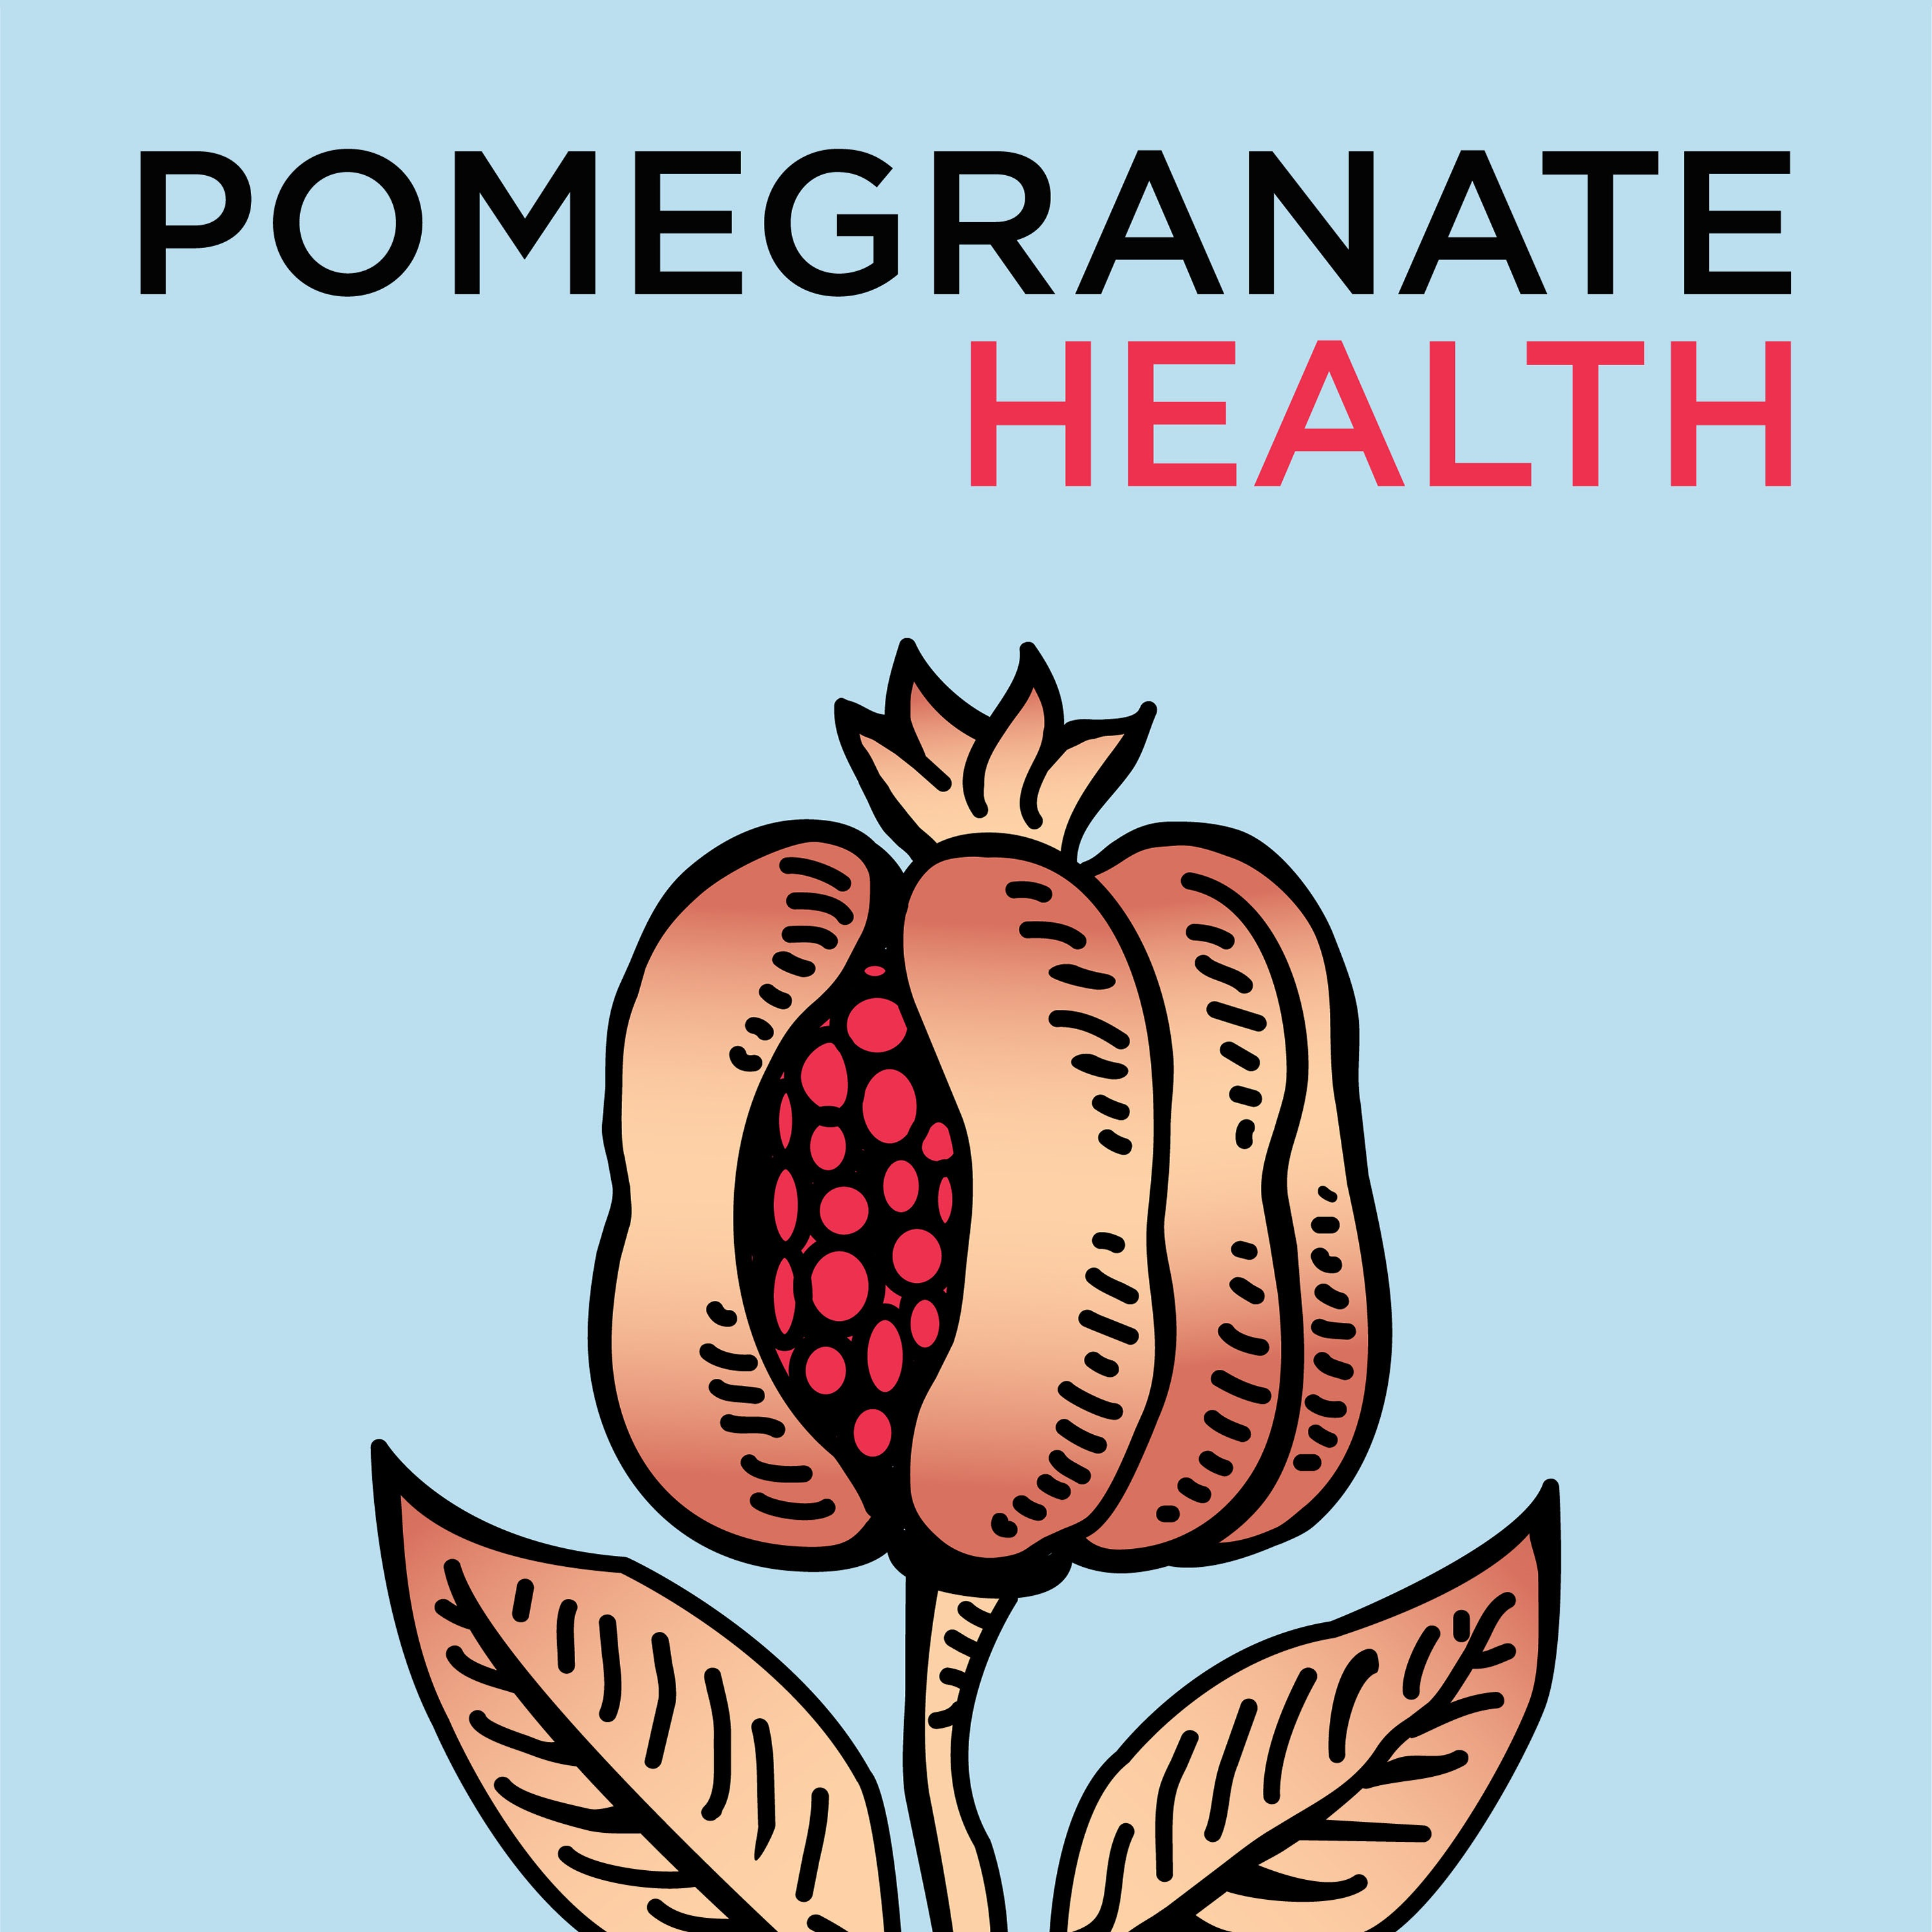 Pomegranate Health